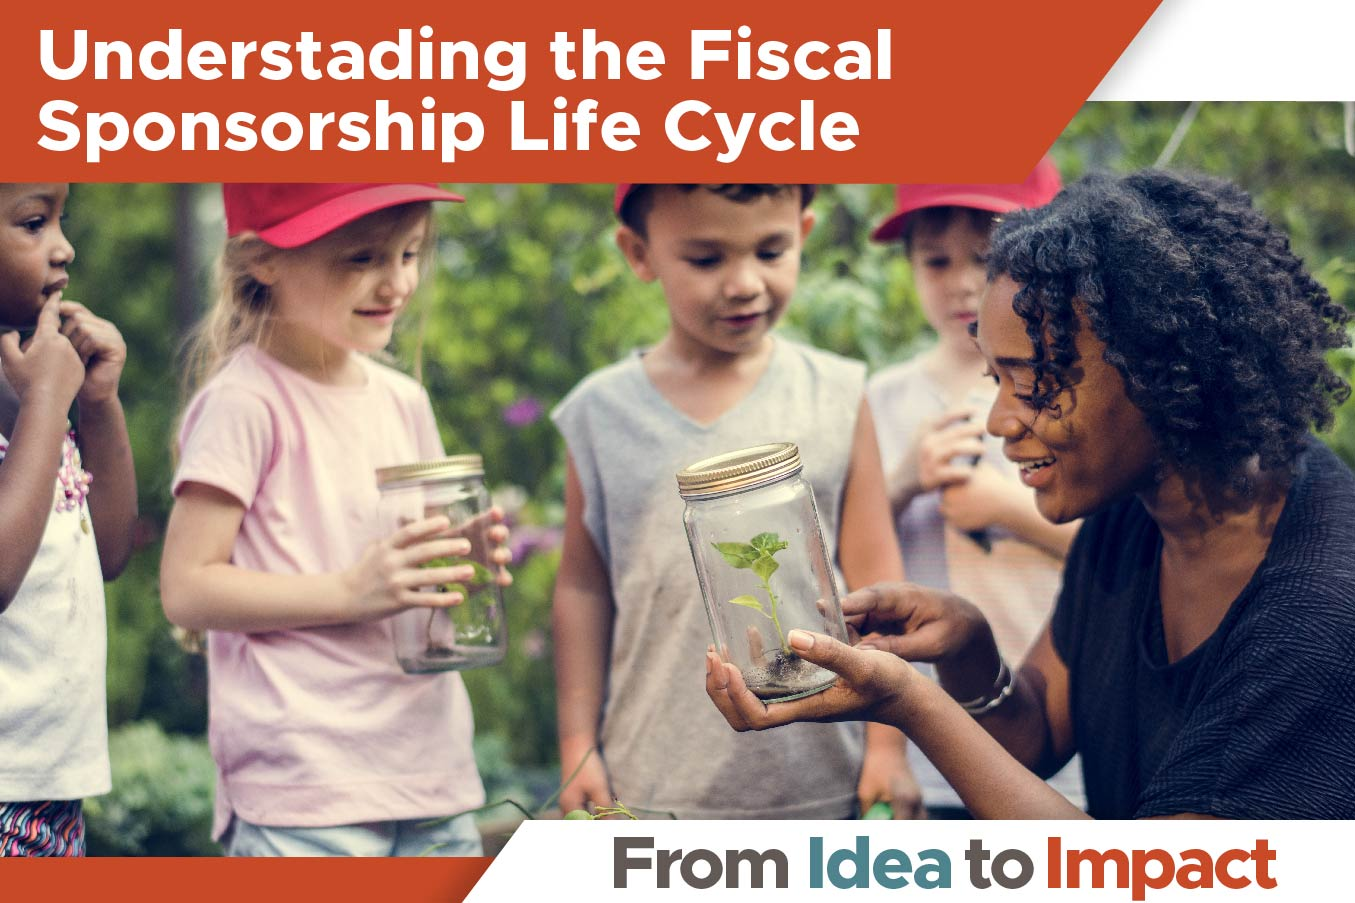 Understanding the Fiscal Sponsorship Life Cycle